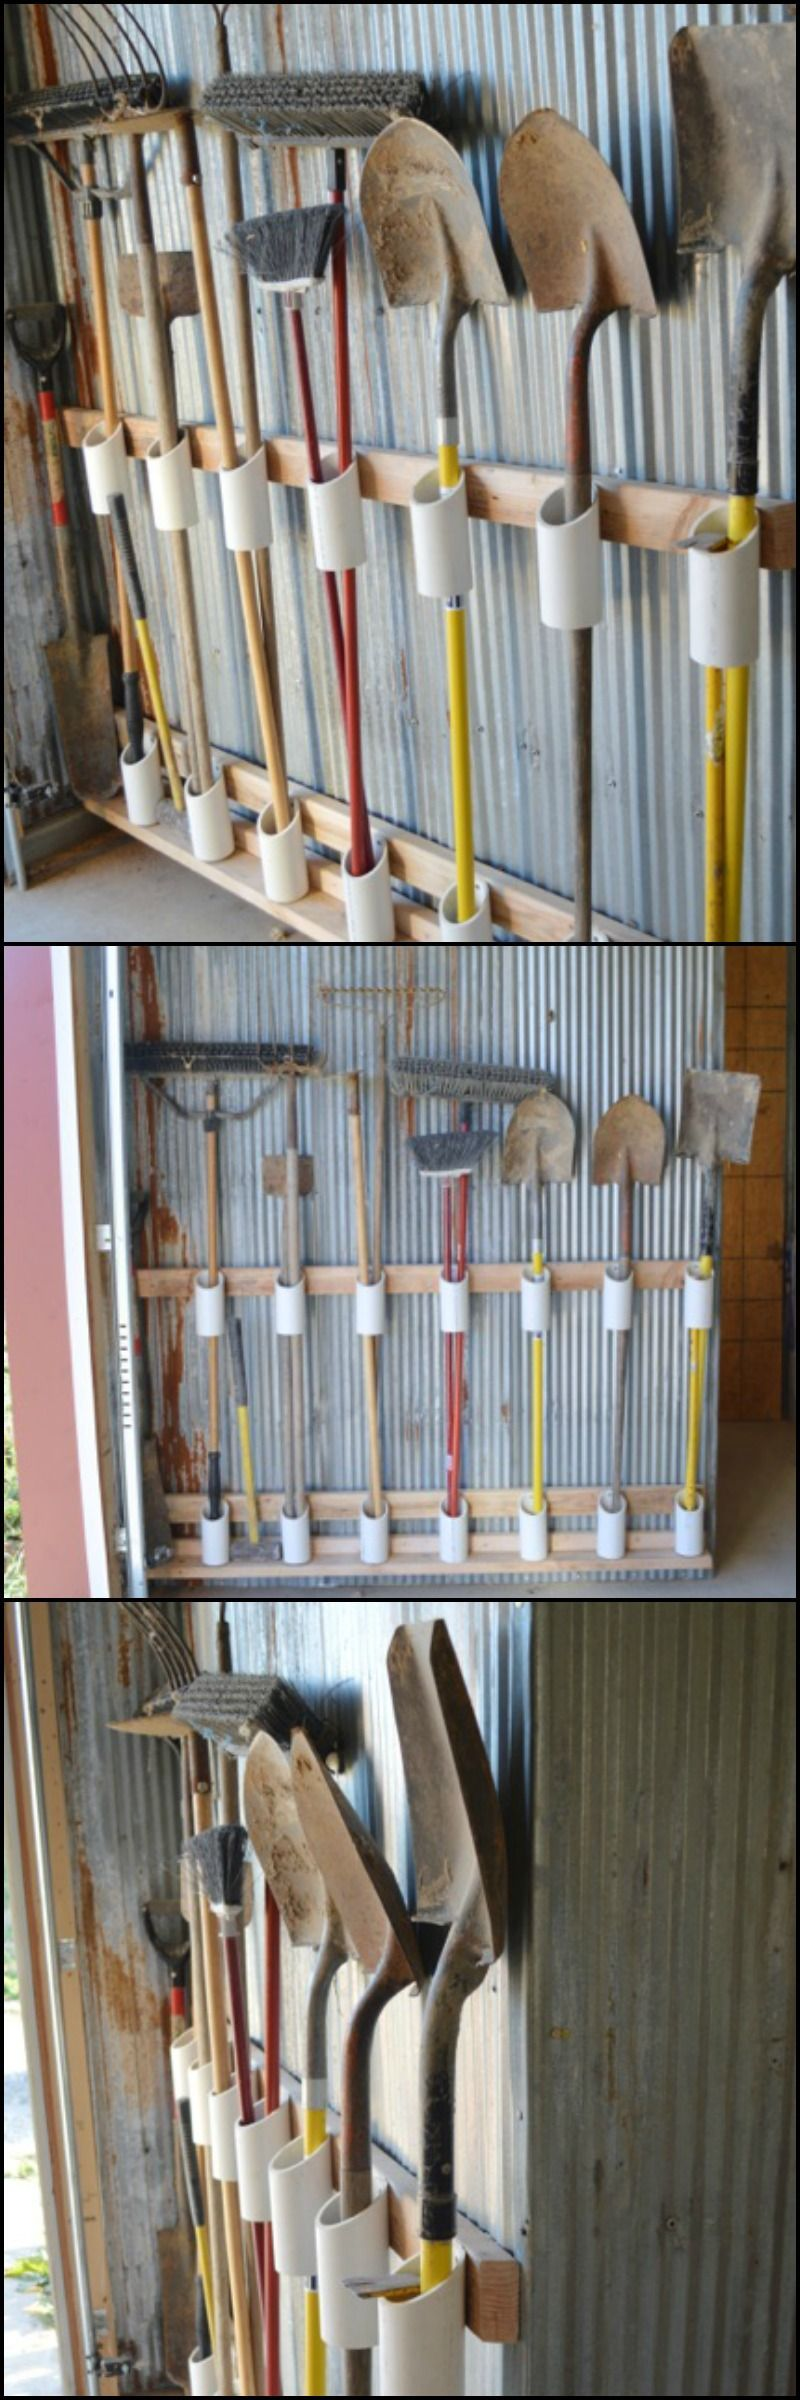 Build A Yard Tool Organizer From PVC!